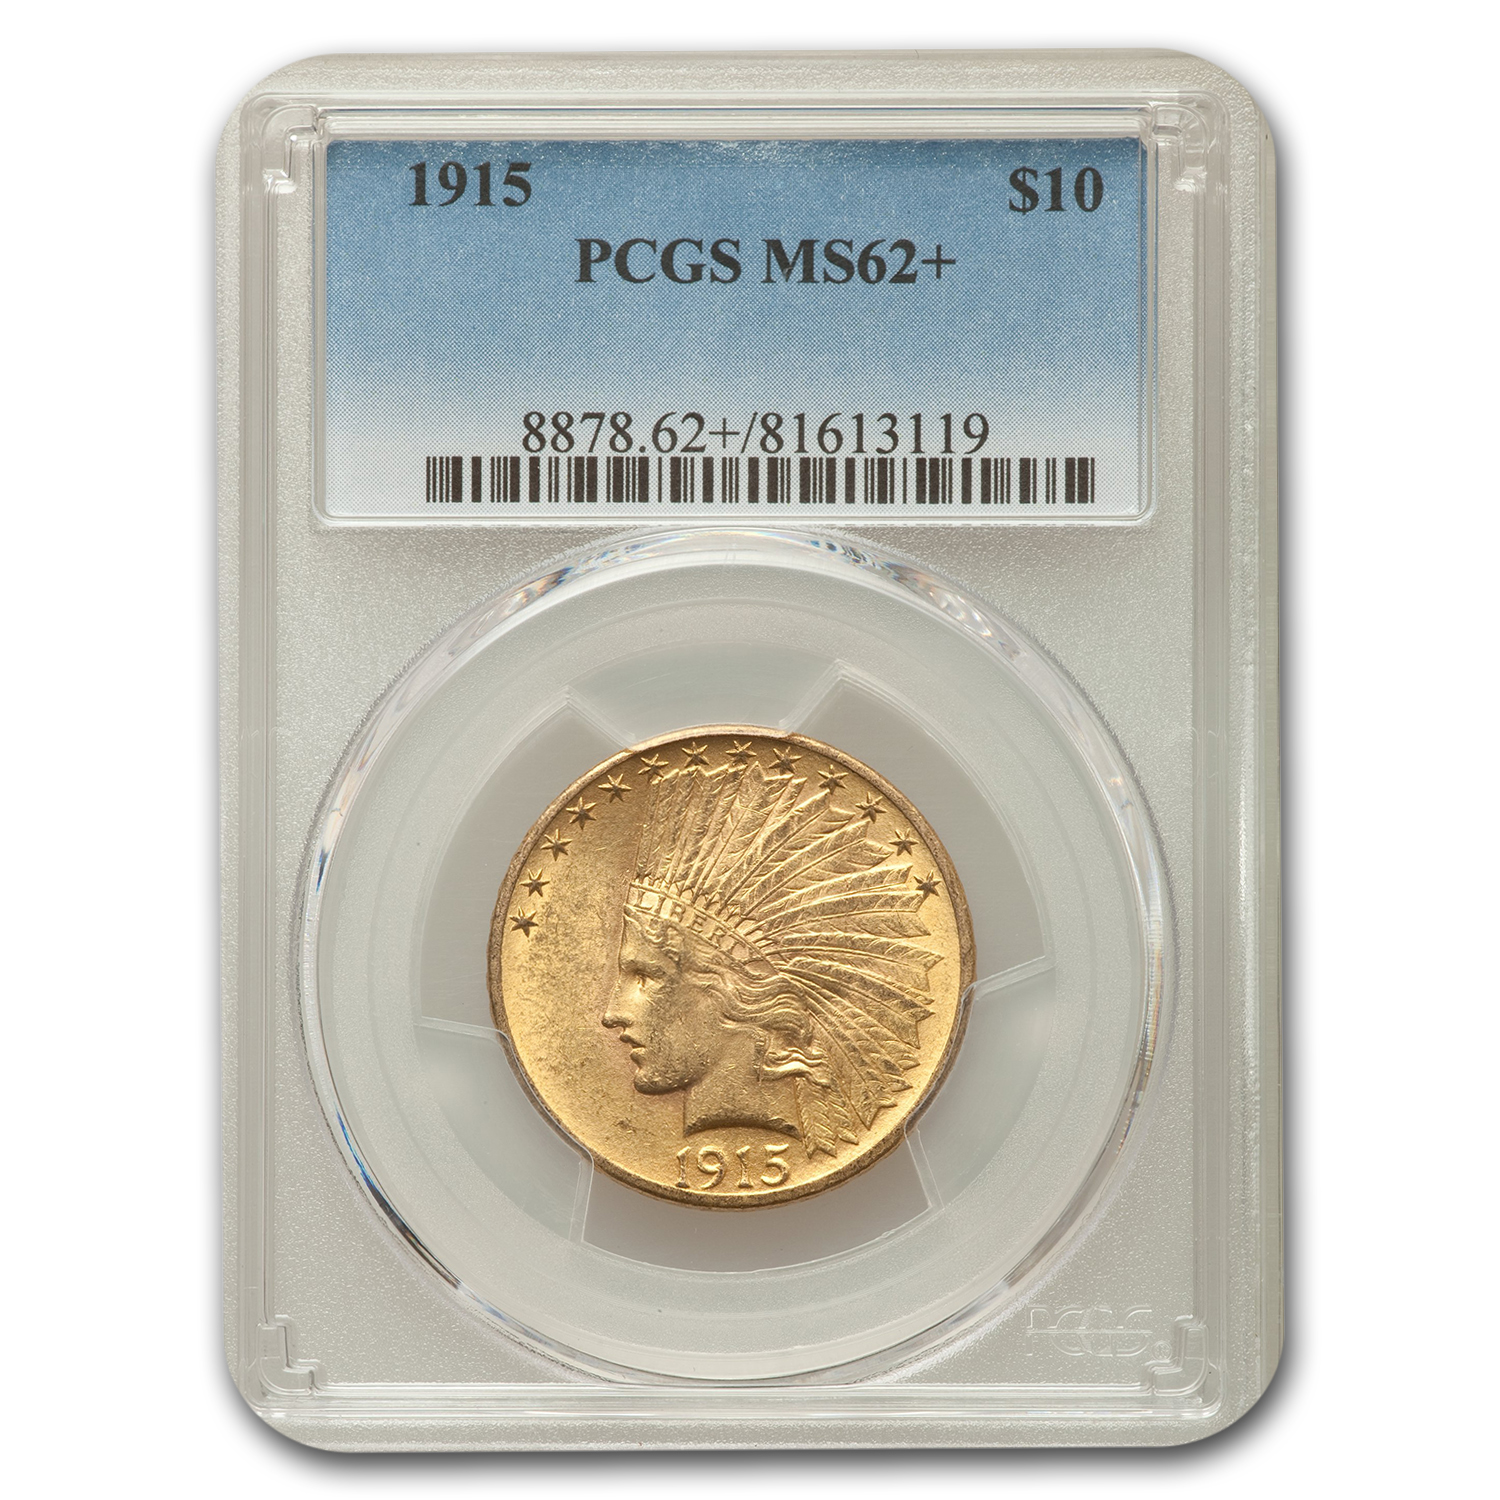 1915 $10 Indian Gold Eagle MS-62+ PCGS